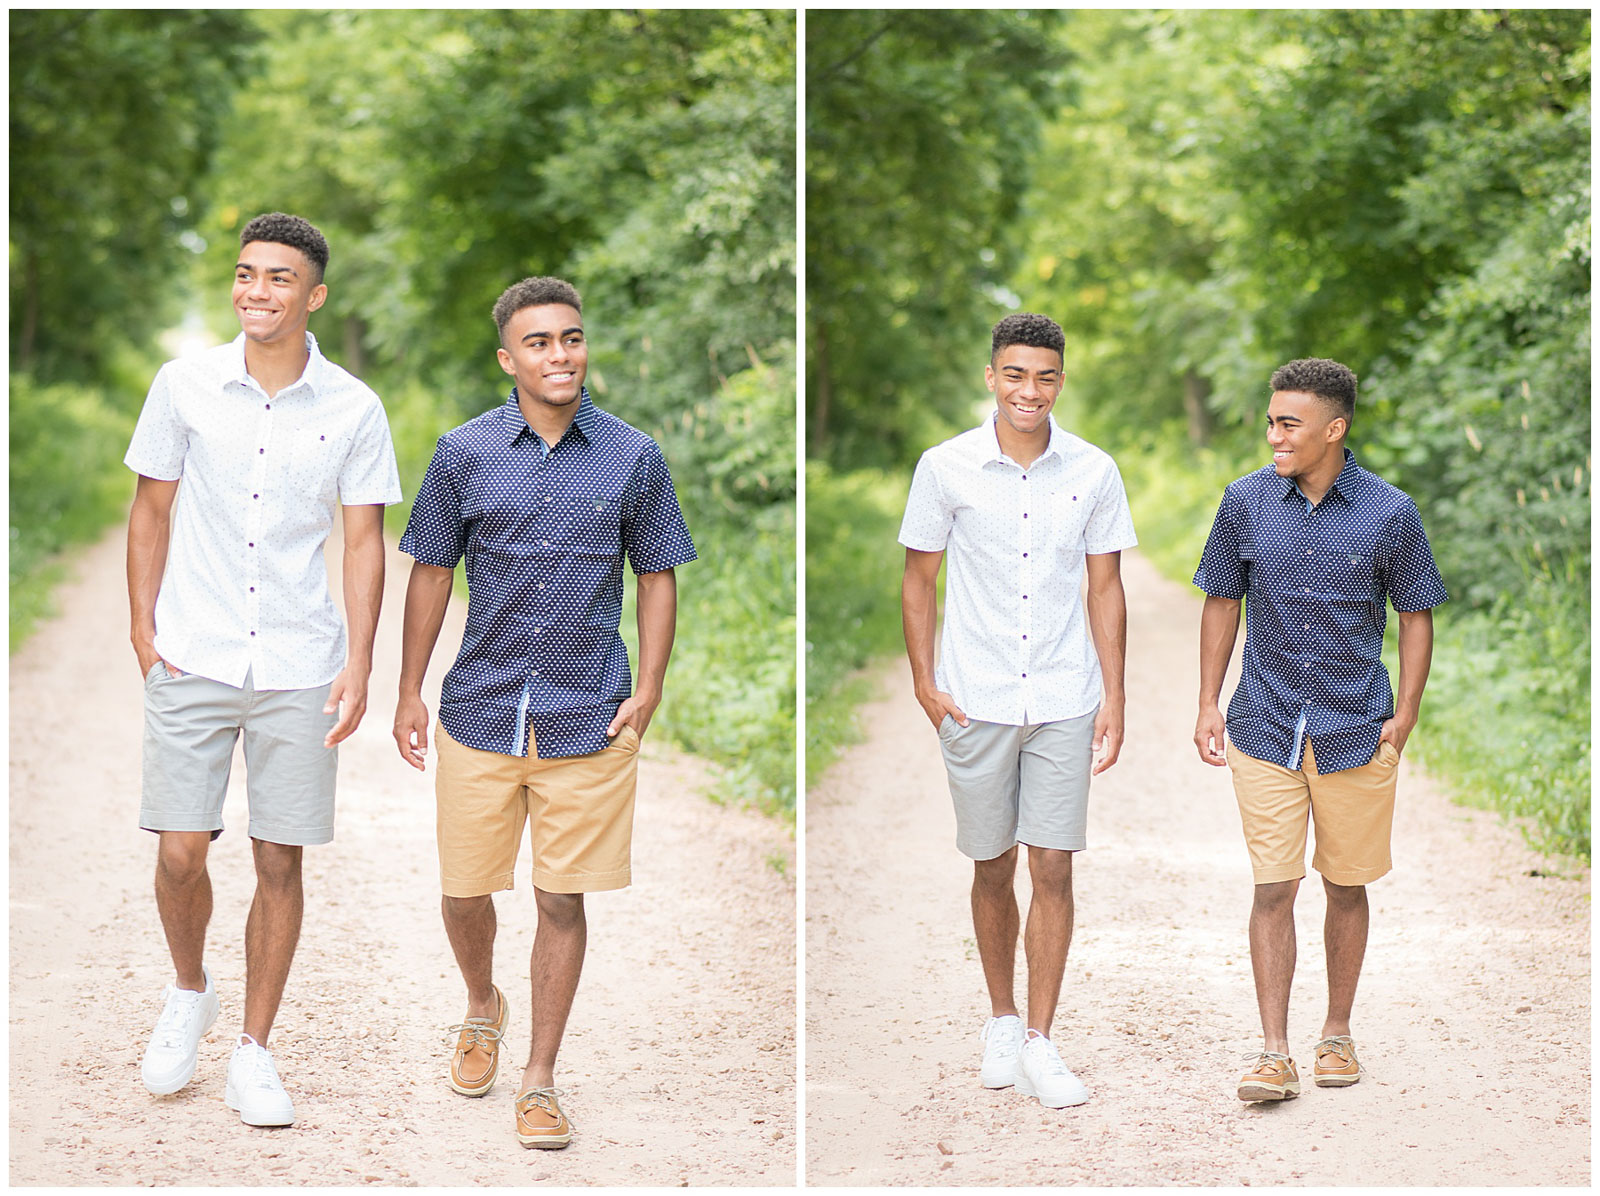 boys walking and laughing outside fun photo experience emily and erin drew esqaured photography